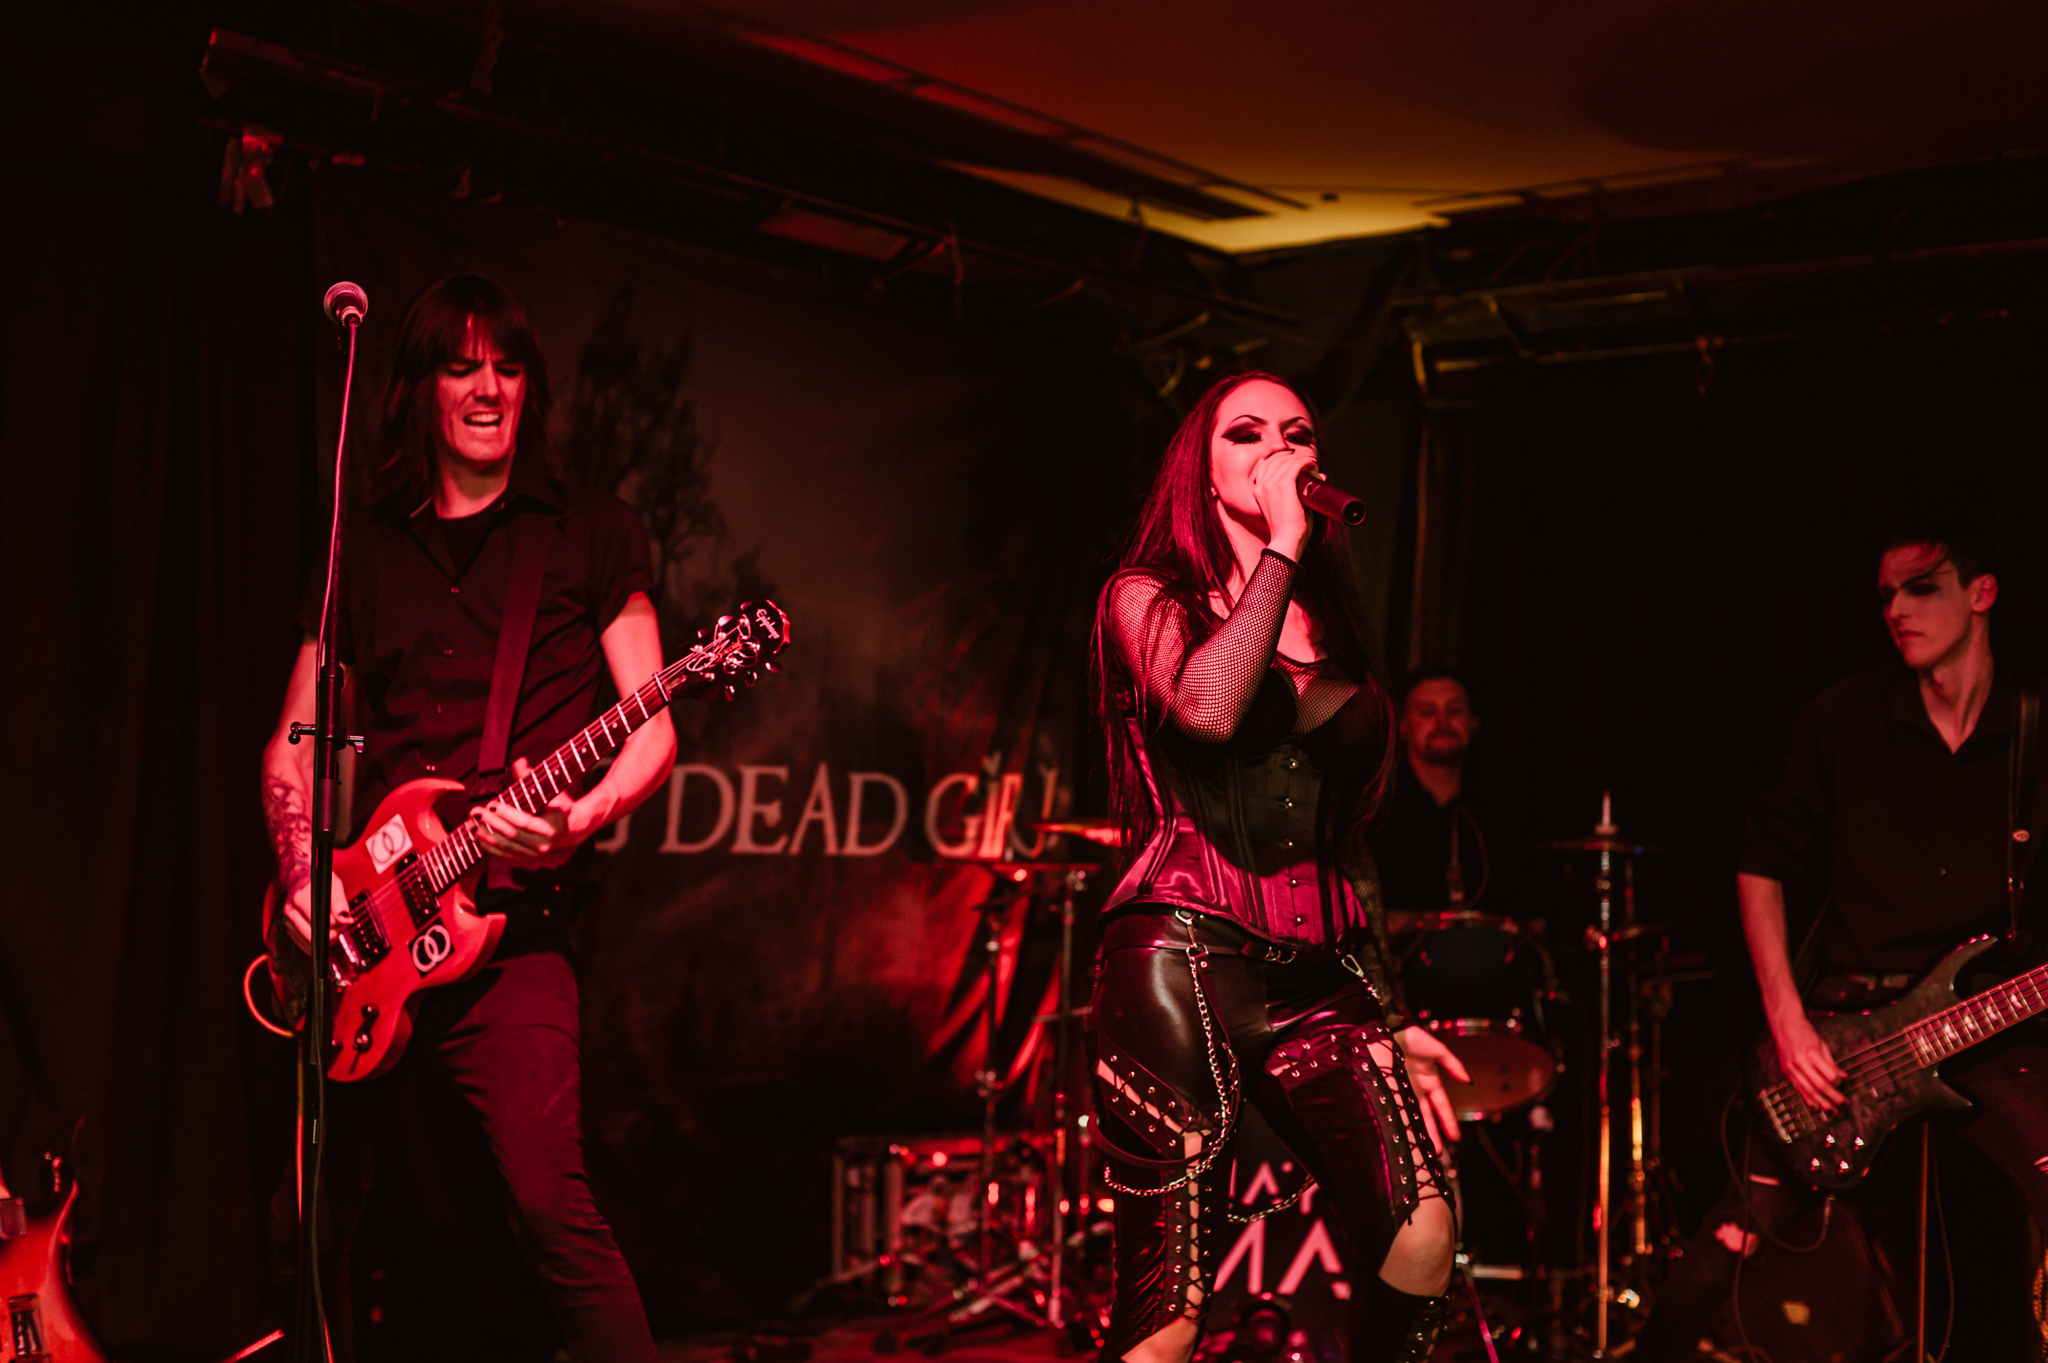 Living Dead Girl's Charity Birthday Bash at the Red Dog